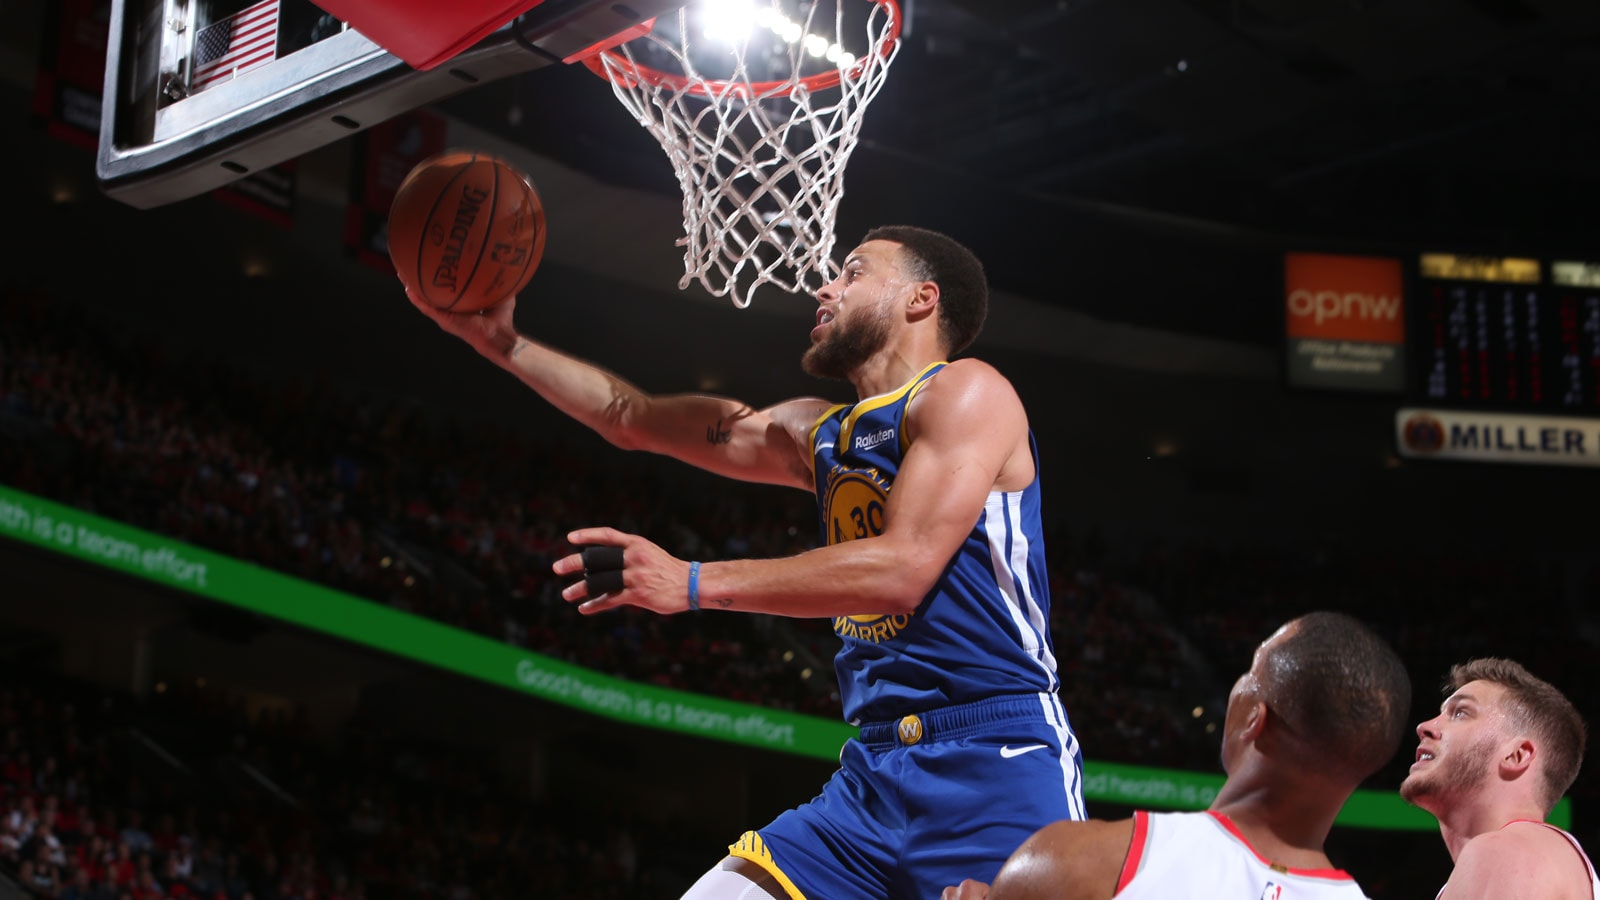 f13911988e1 Sam opens his mailbag and answers your questions about draft prospects and  other stories around the NBA